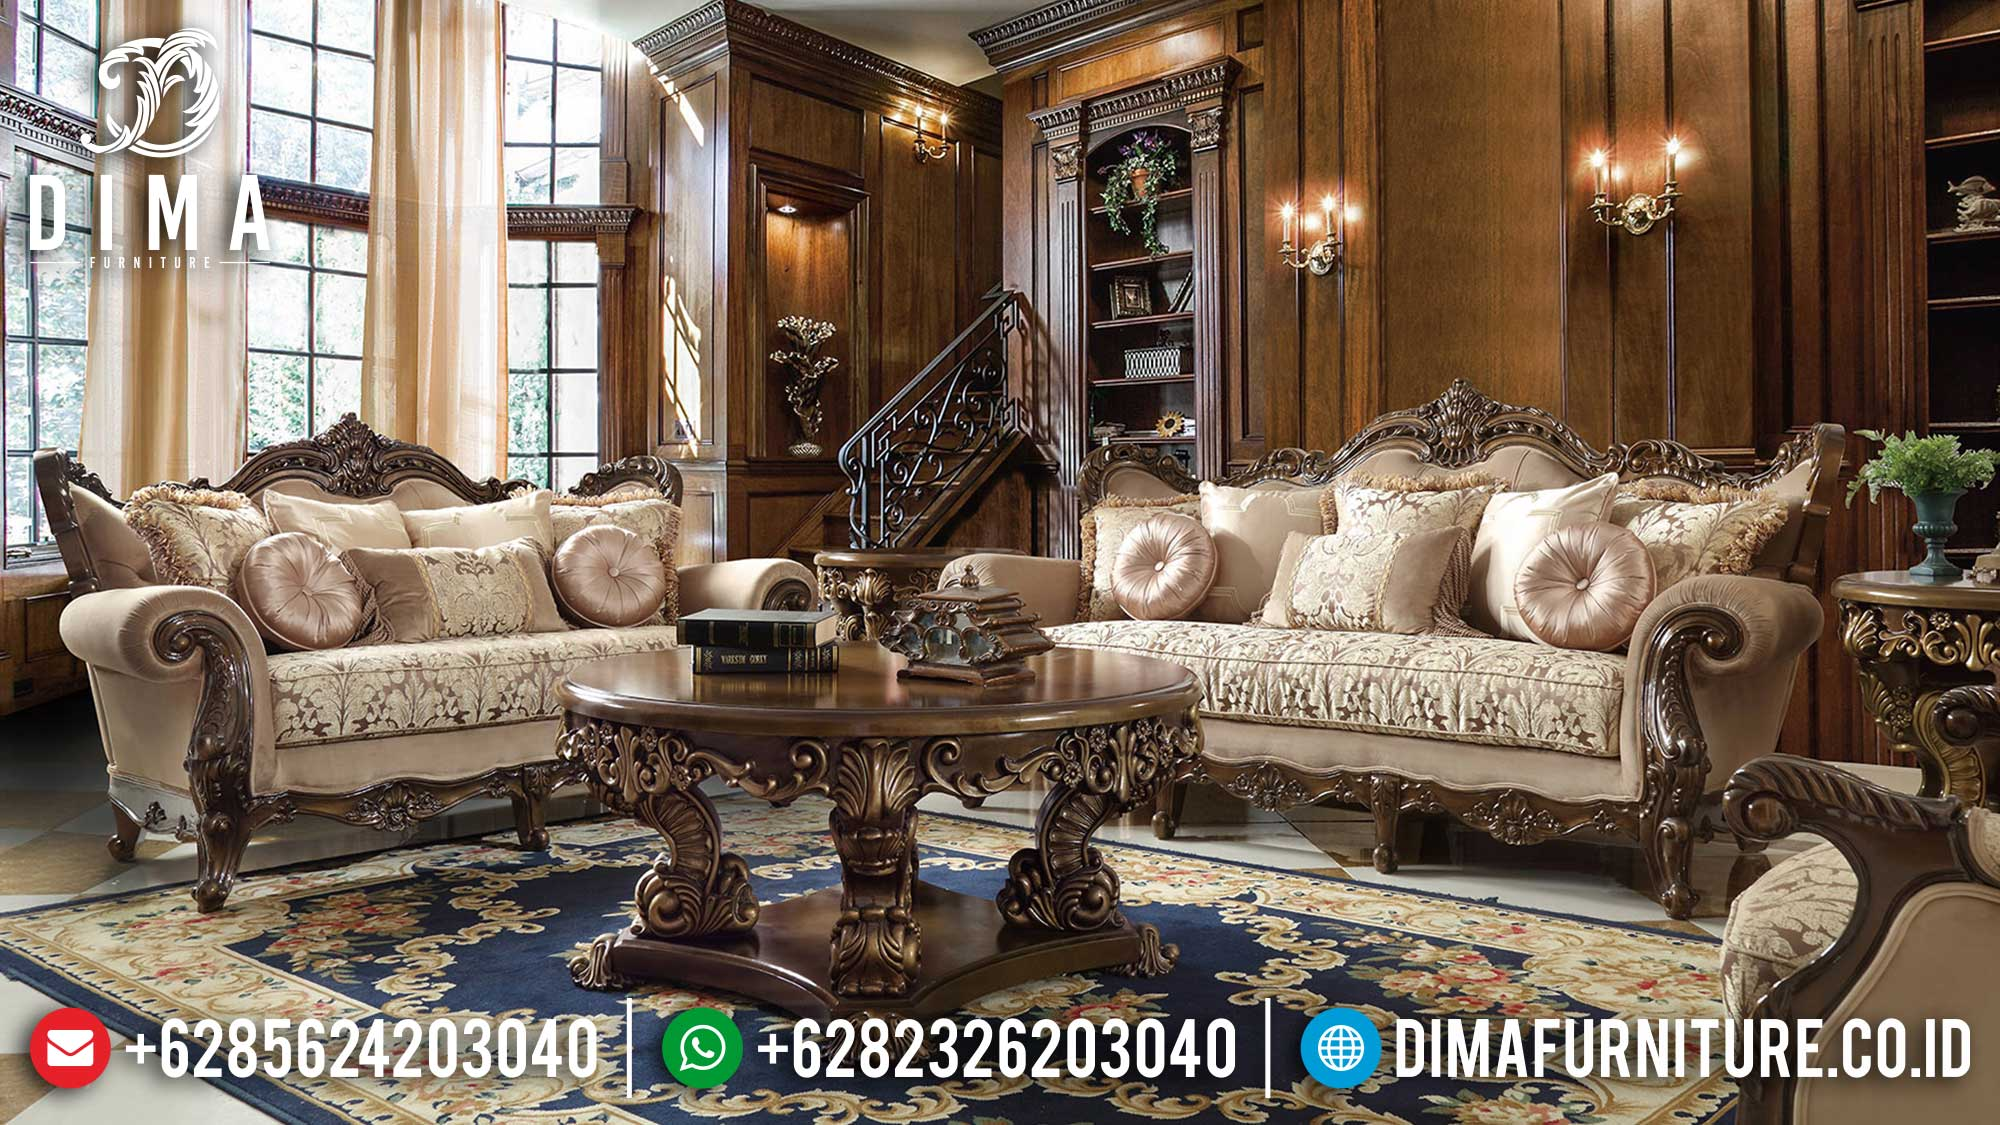 New Sofa Tamu Mewah Terbaru Art Duco Luxury Carving TTJ-1619